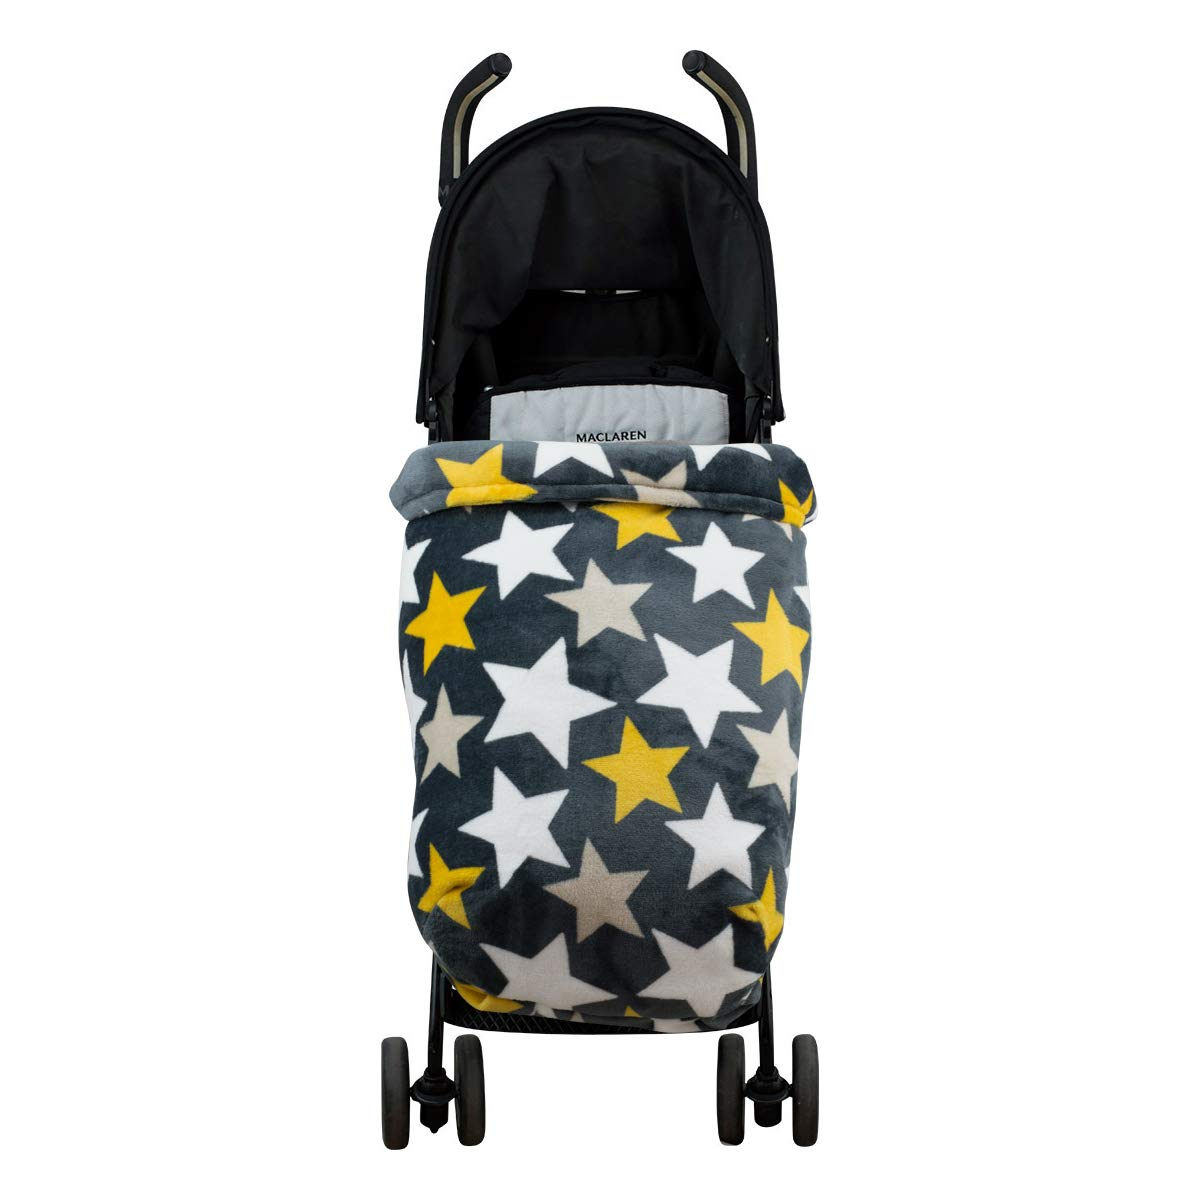 Janabebé Universal Baby Blanket Footmuff for Pushchairs (Nordic Yellow, Polar Fleece)